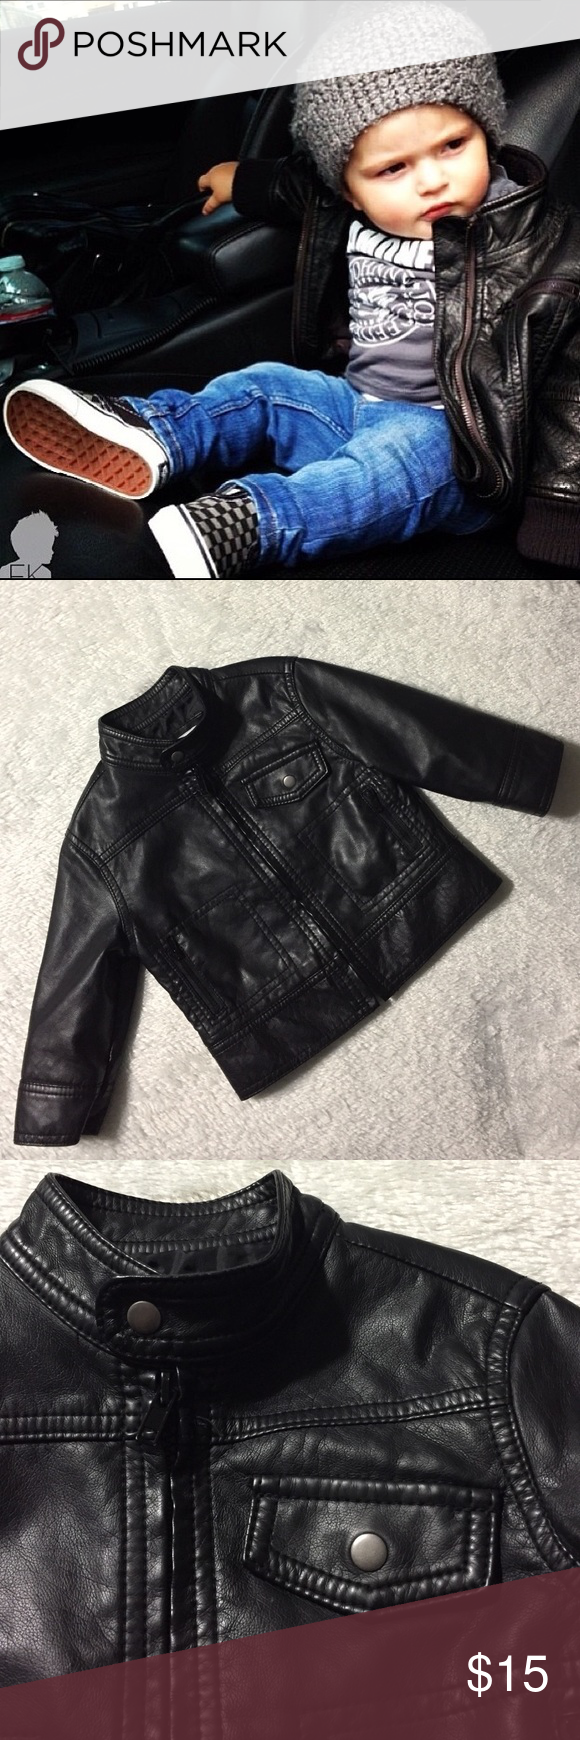 Hp Baby Vegan Leather Jacket Size 12months Vegan Leather Jacket Leather Jacket Jackets